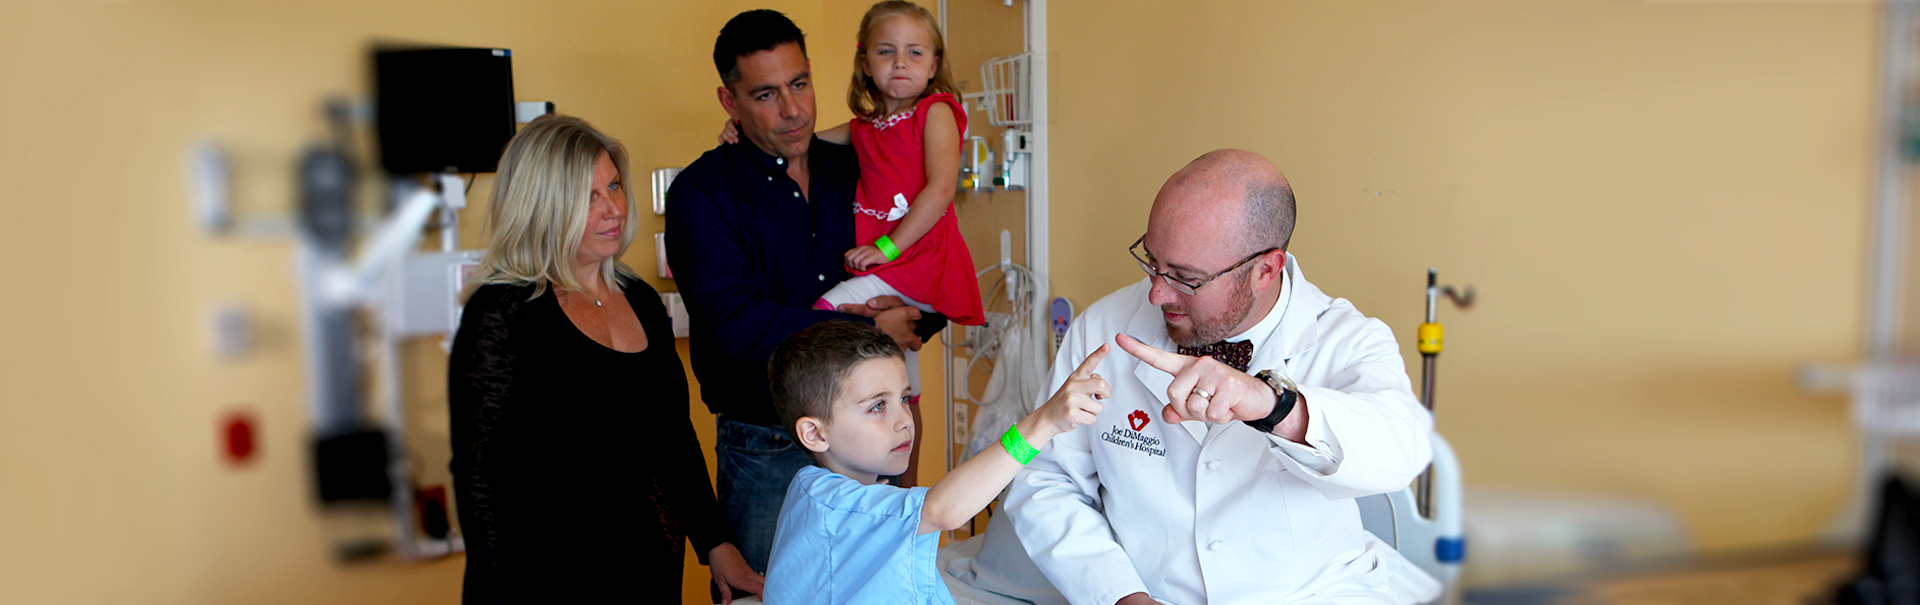 pediatric neurology joe dimaggio children s hospital physician child and family >